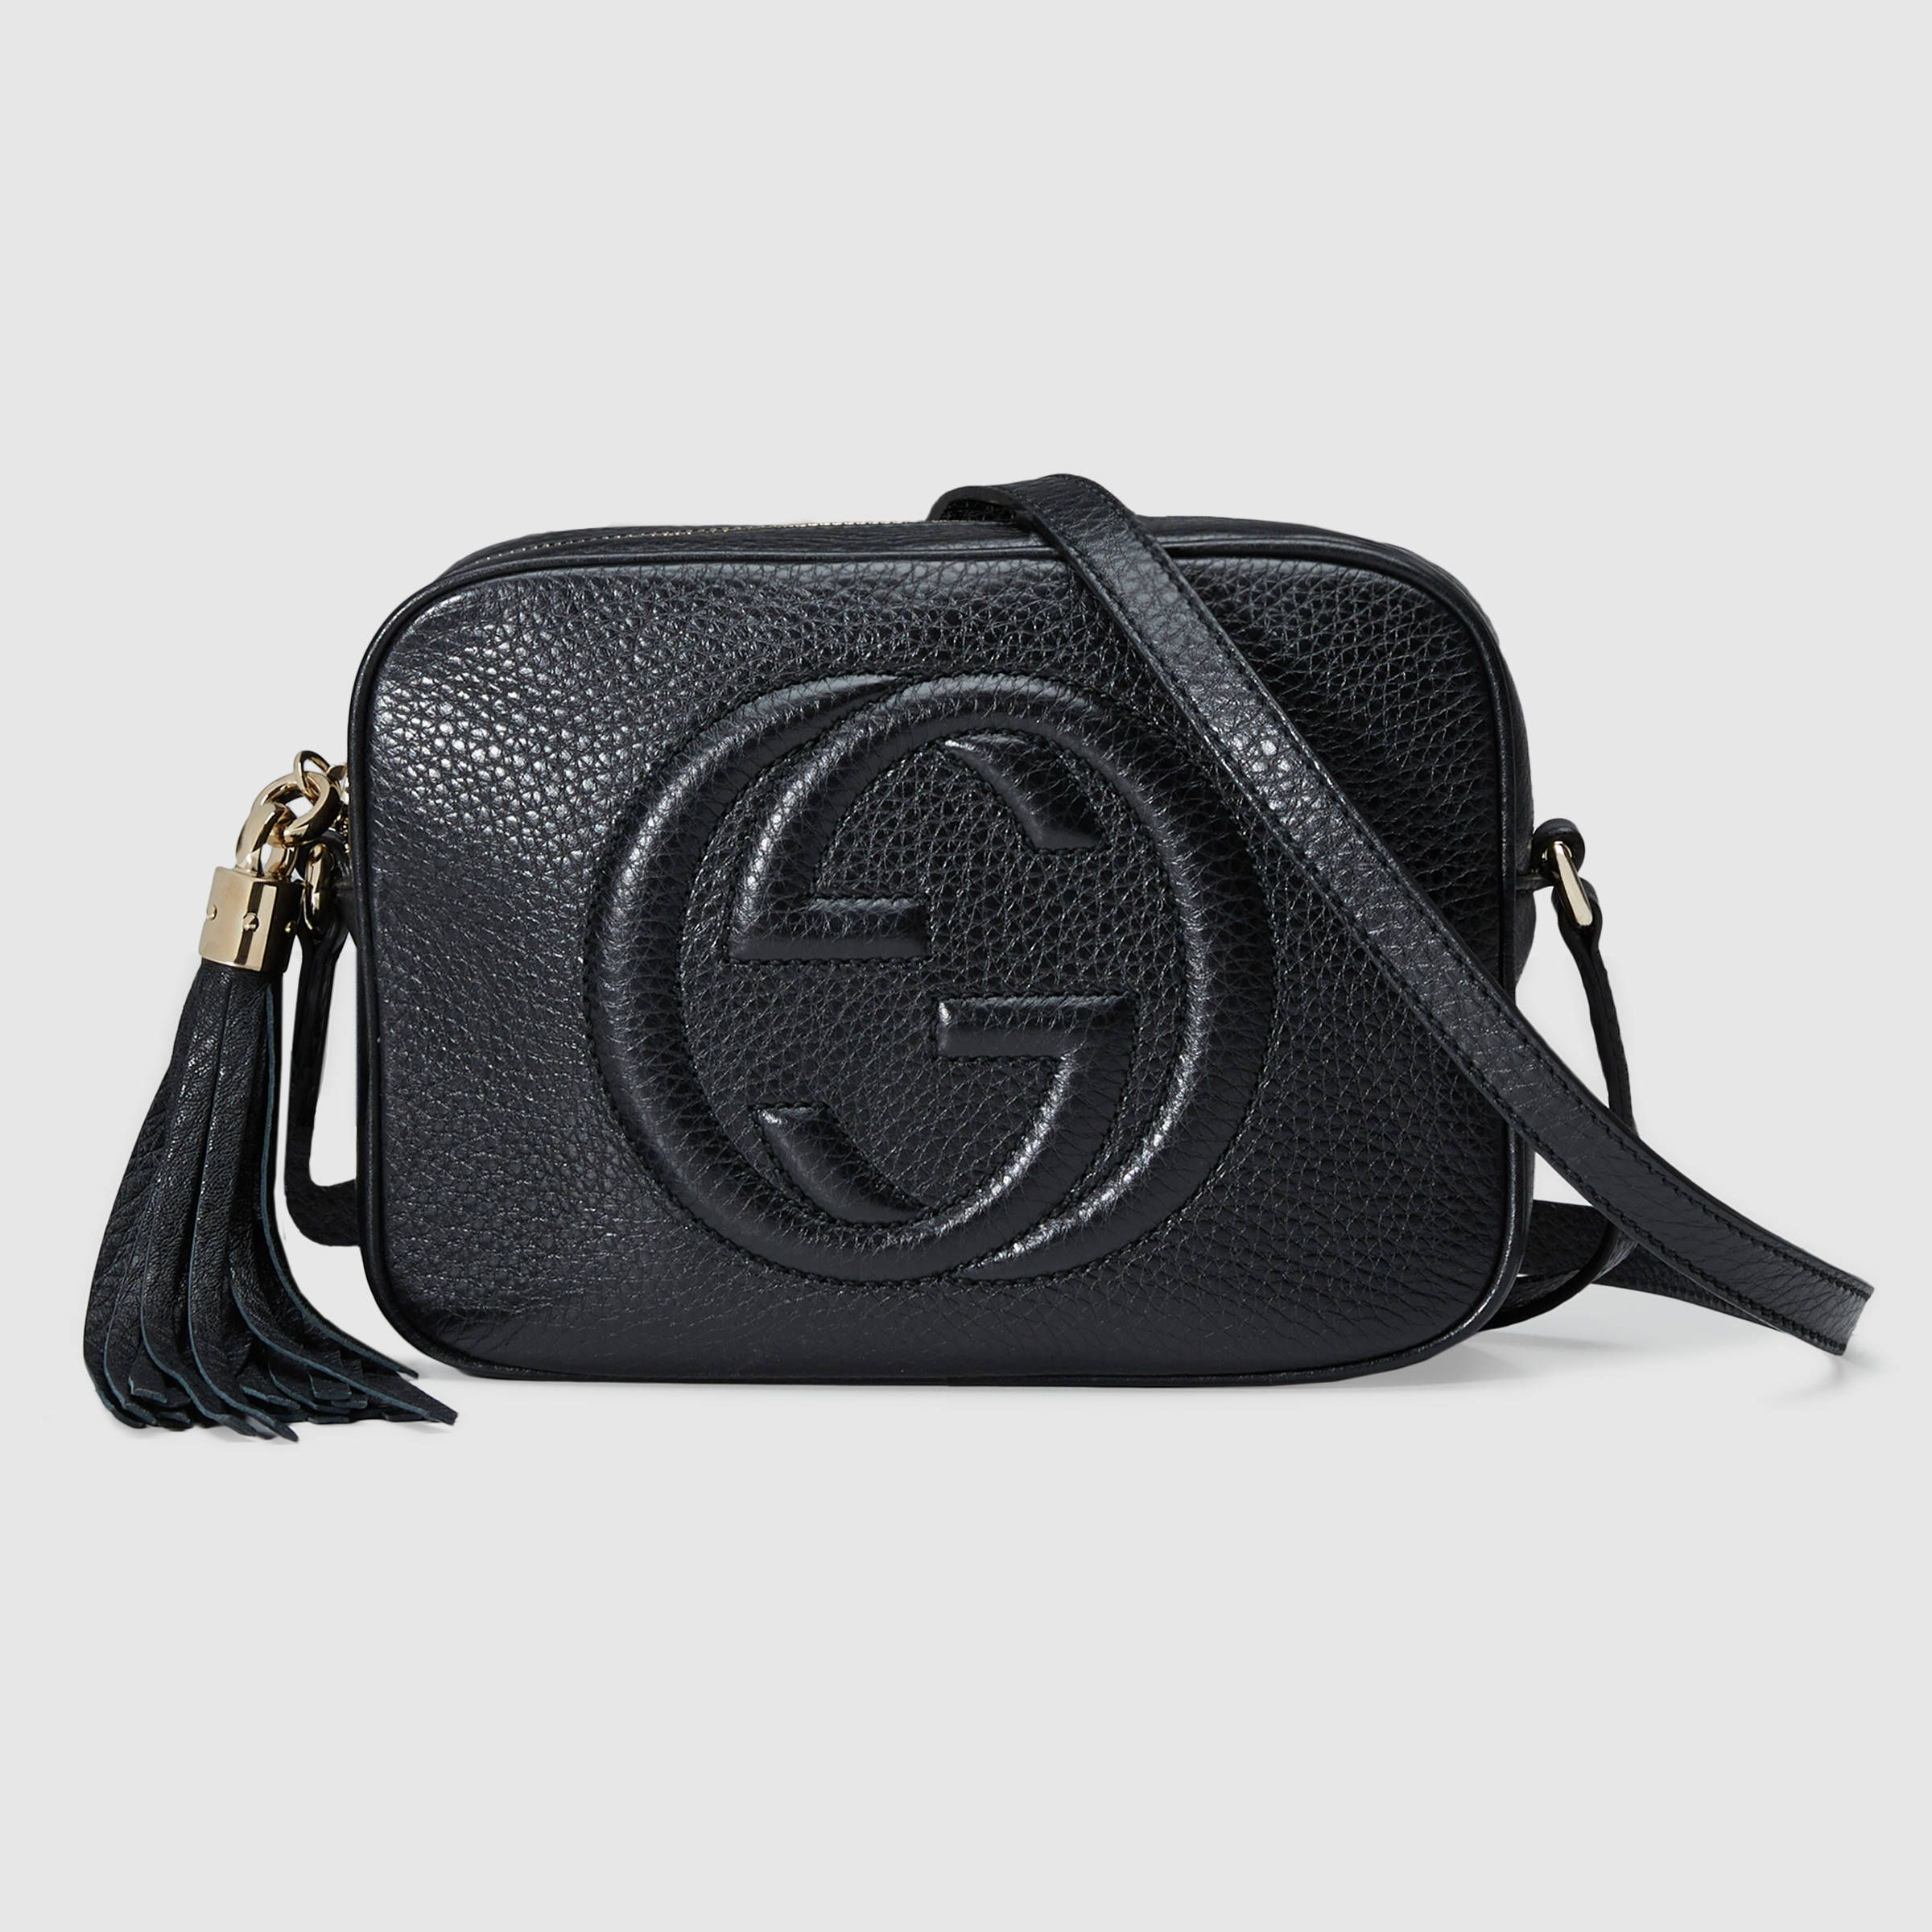 a79bd992ca18 Gucci - Soho Leather Disco Bag. A compact shoulder bag with a leather  tassel zipper pull. Sized to fit the necessities. Made in our light,  natural grain ...